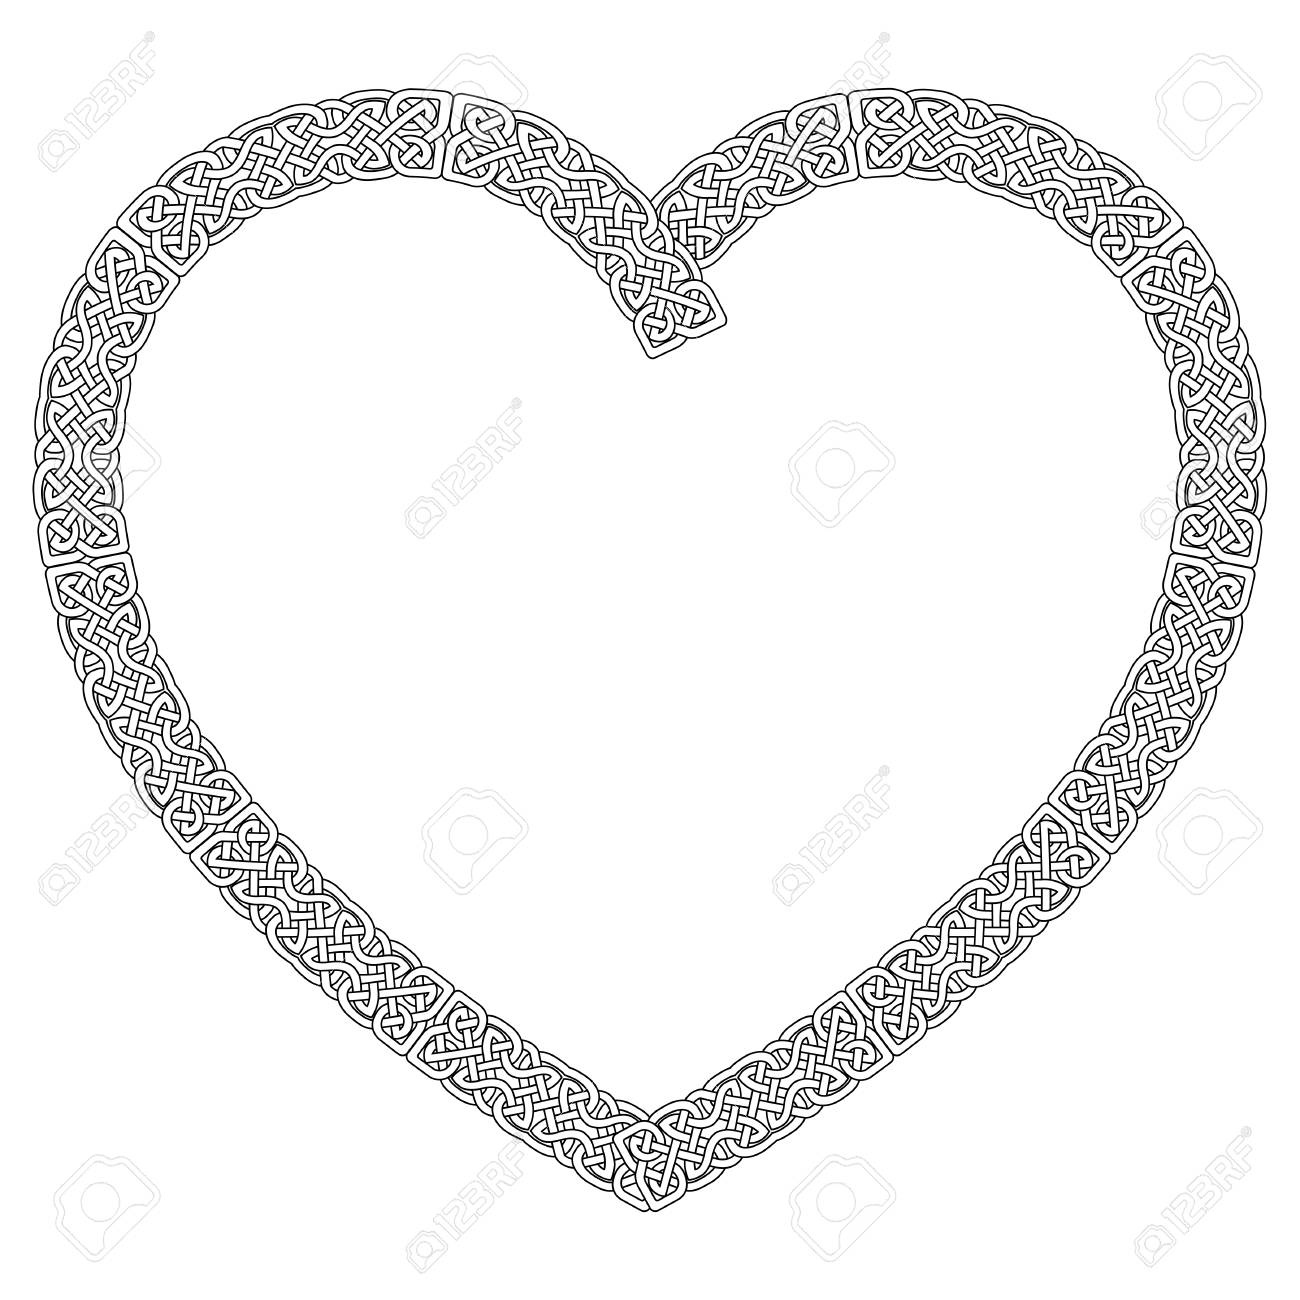 Celtic style knotted heart in white with black stroke with eternity celtic style knotted heart in white with black stroke with eternity knot pattern stock vector biocorpaavc Gallery